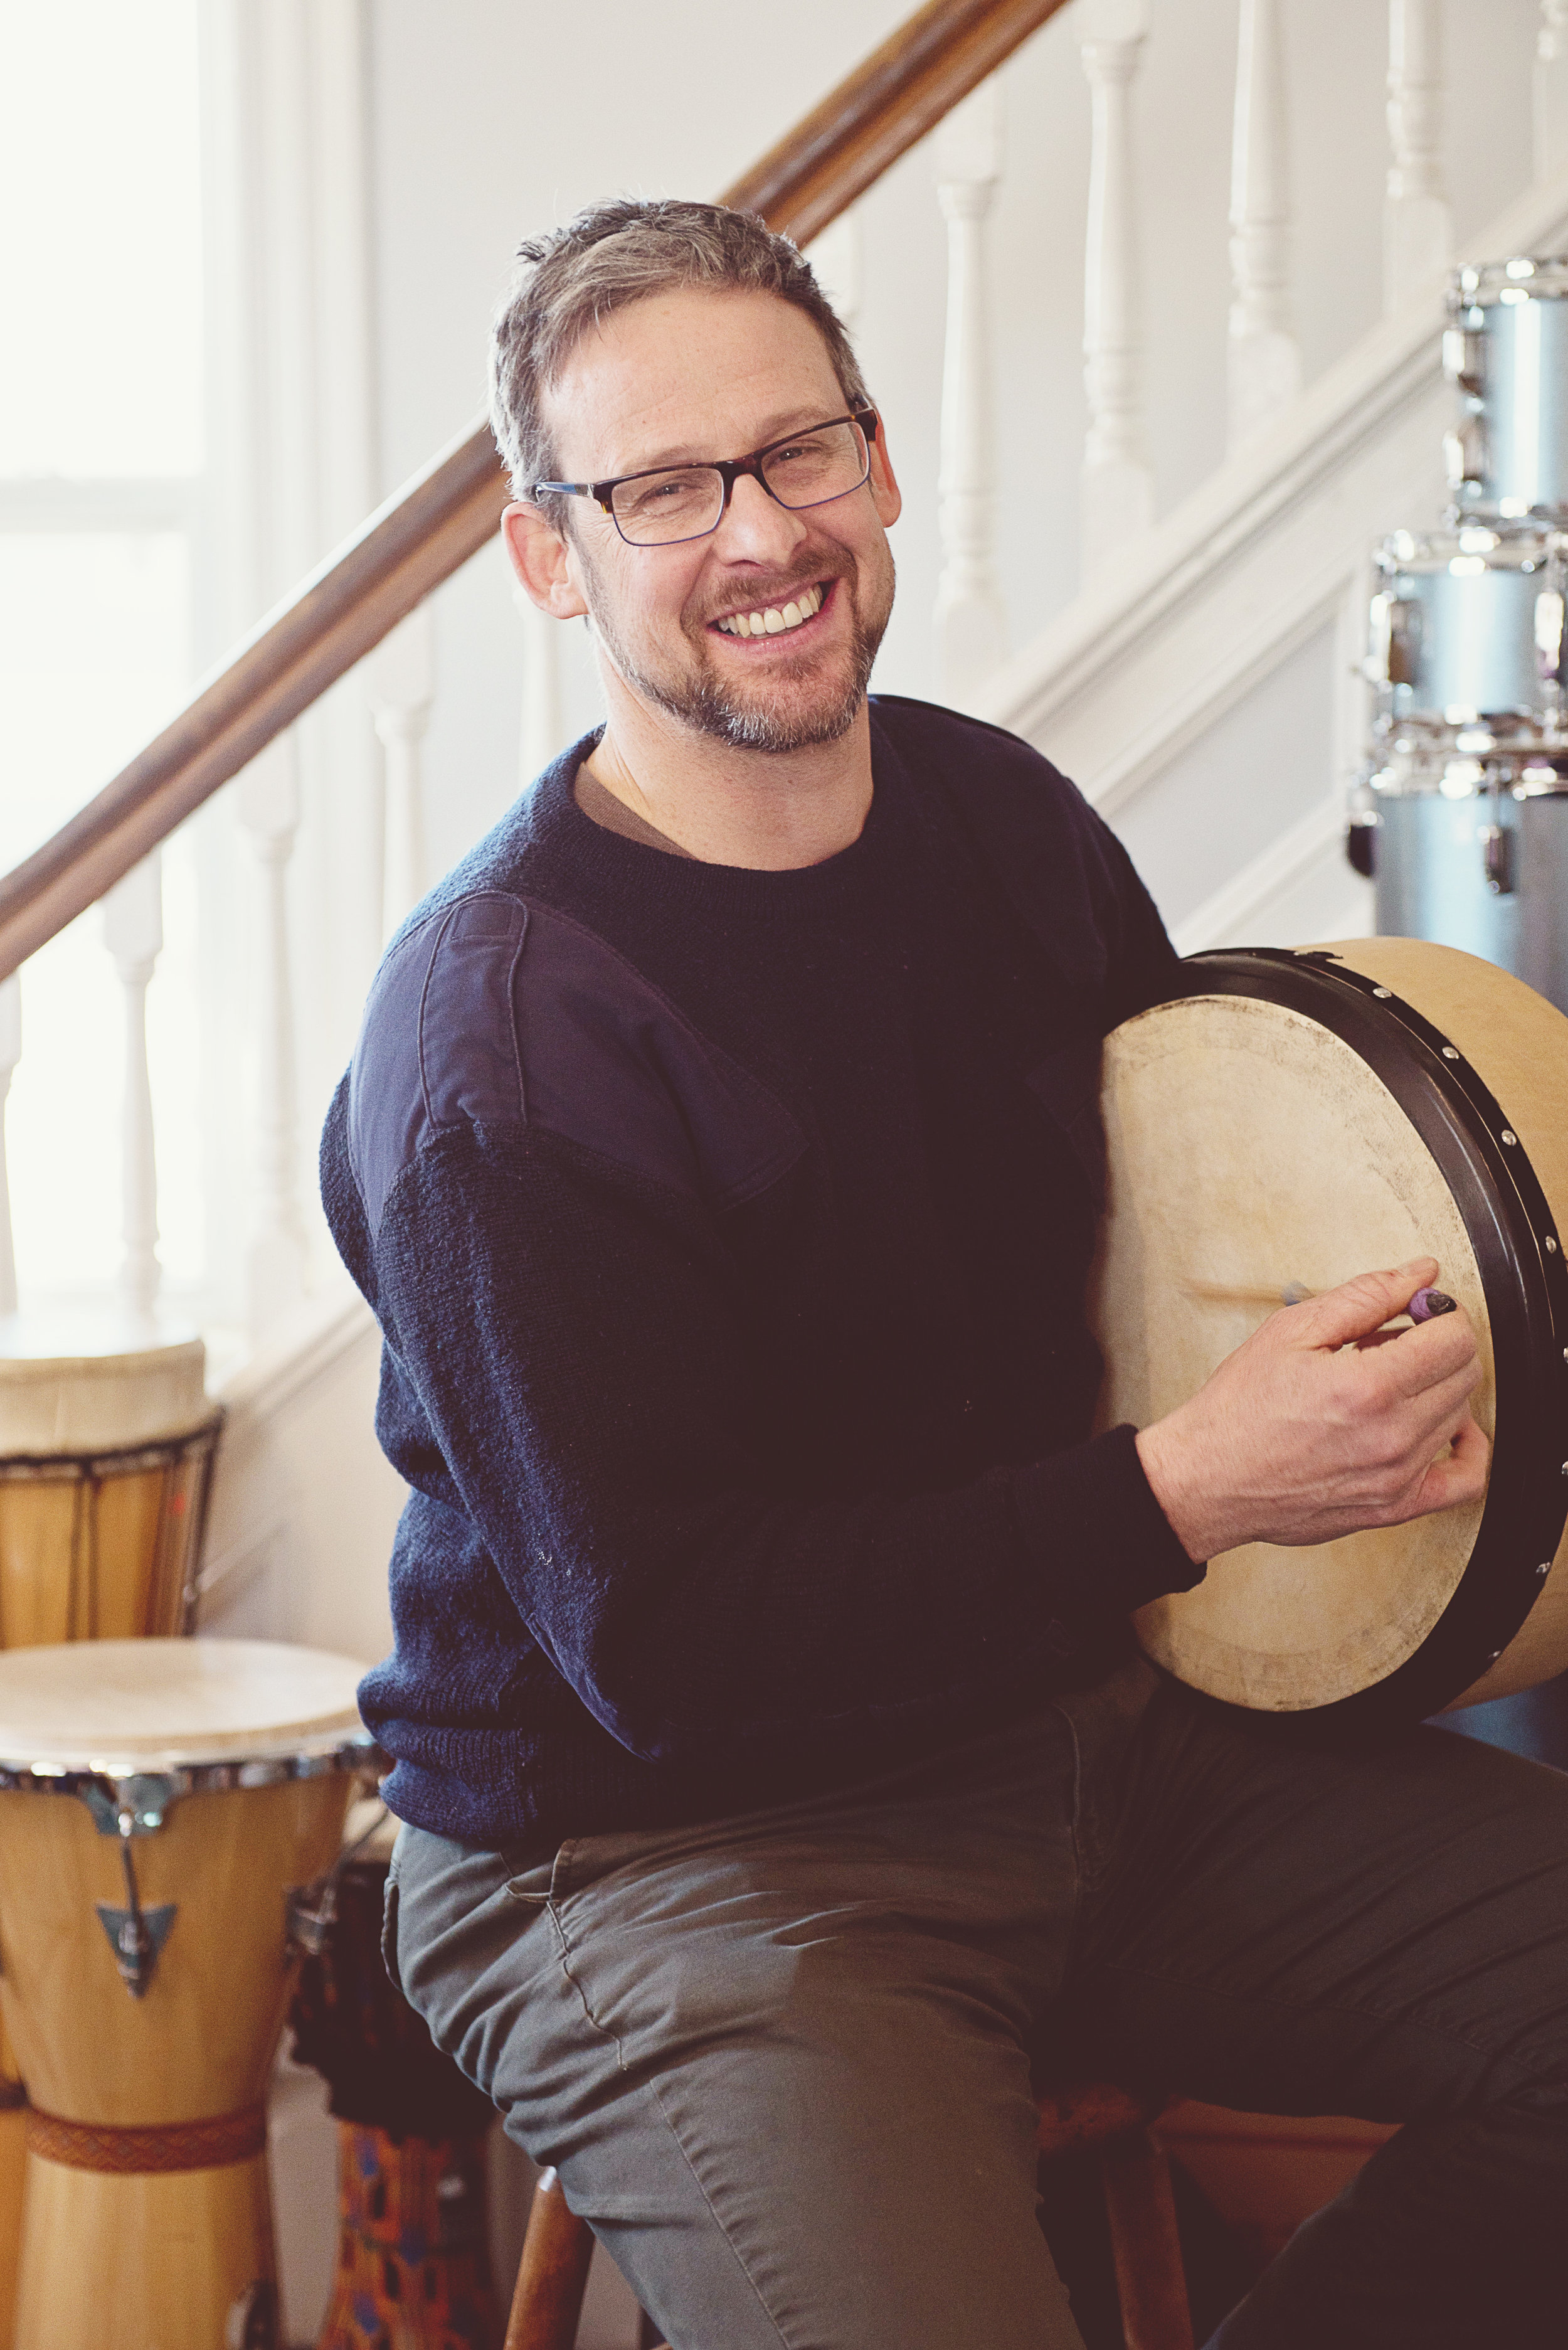 RJ Genge Bodhran  RJ has played bodhran since 1993, with a top-end style Limerick and double-end Kerry. He has performed in Newfoundland bands Banish Misfortune and Tickle Harbor, and Nova Scotia's Peelers Jacket and McMullen and St. Maurice, winning an ECMA for Roots Traditional Album of the Year for McMullen and St. Maurice's  Fingerboard Grooves  in 2001.